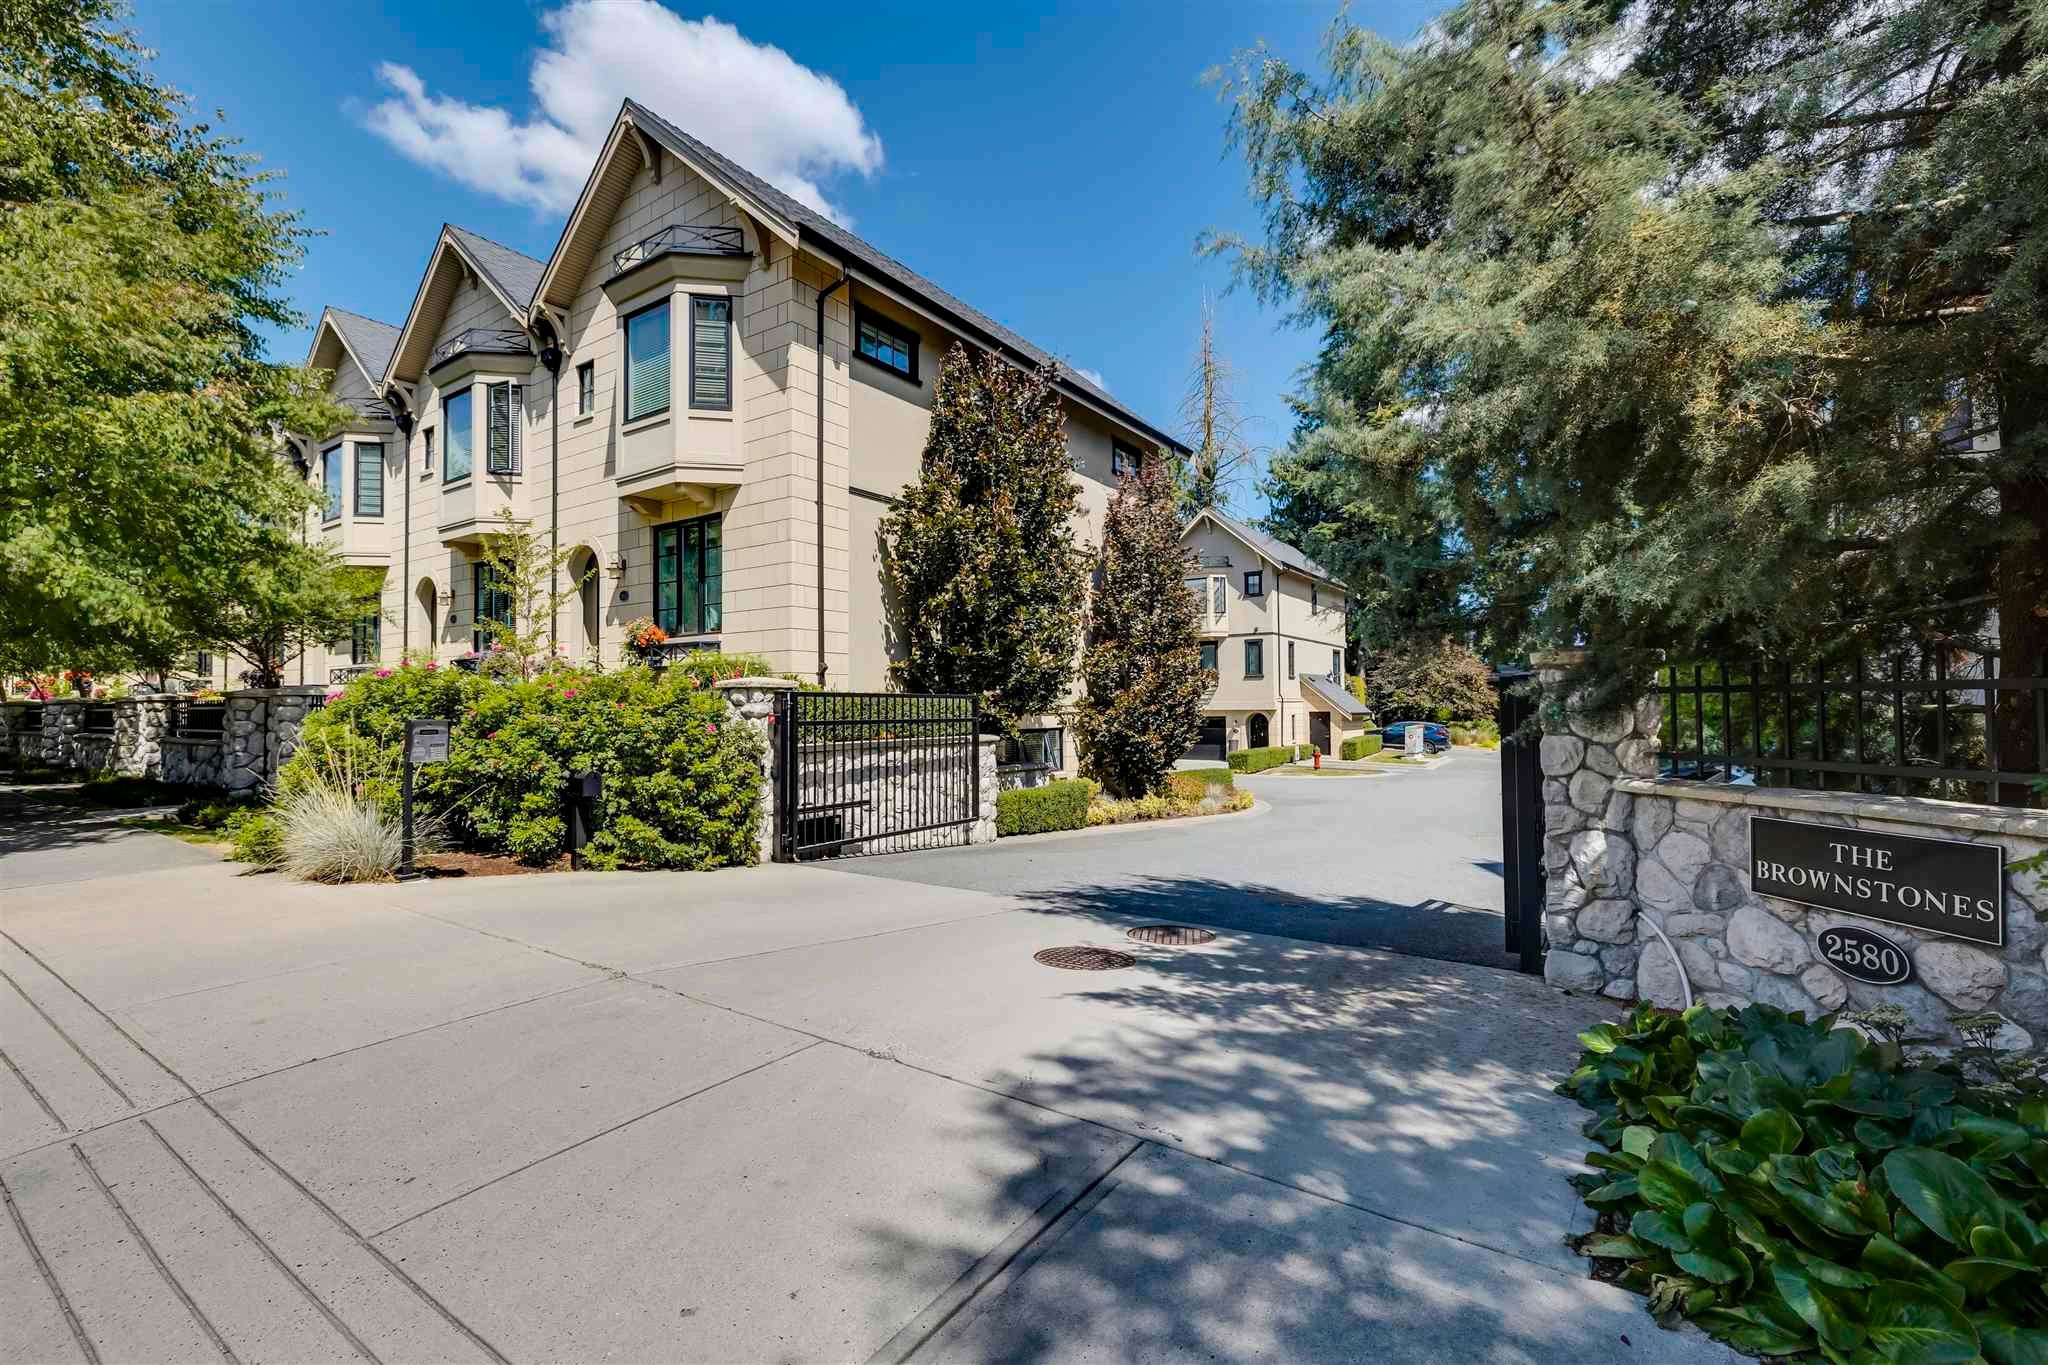 """Main Photo: 527 2580 LANGDON Street in Abbotsford: Abbotsford West Townhouse for sale in """"BROWNSTONES"""" : MLS®# R2607055"""